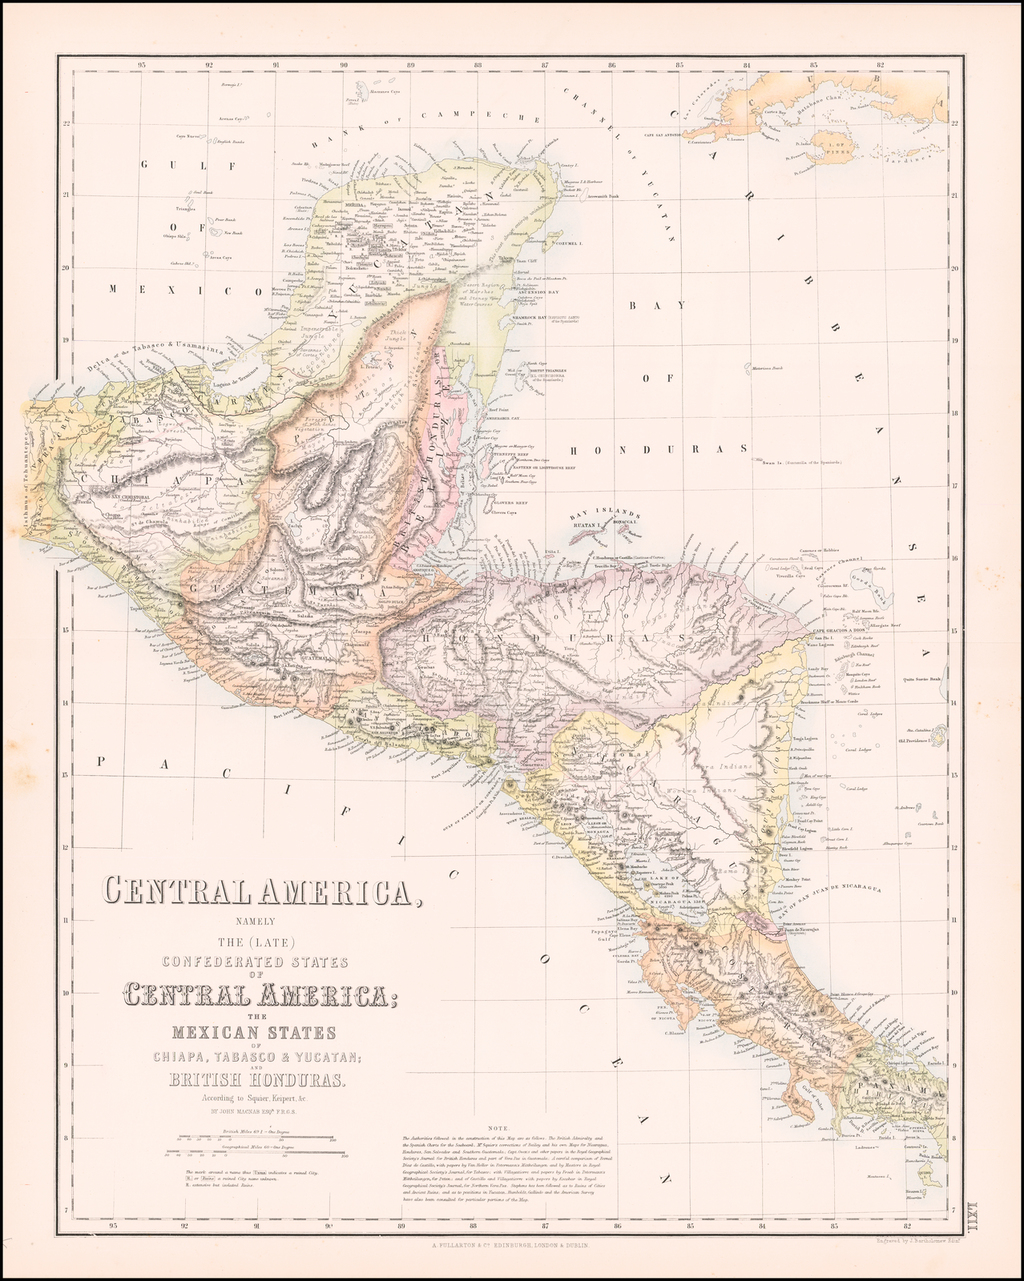 Central America, Namely The (Late) Confederate States of Central America; The Mexican States Chiapa, Tabasco & Yucatan; And British Honduras.  According to Squier, Keipert &c. By Archibald Fullarton & Co.